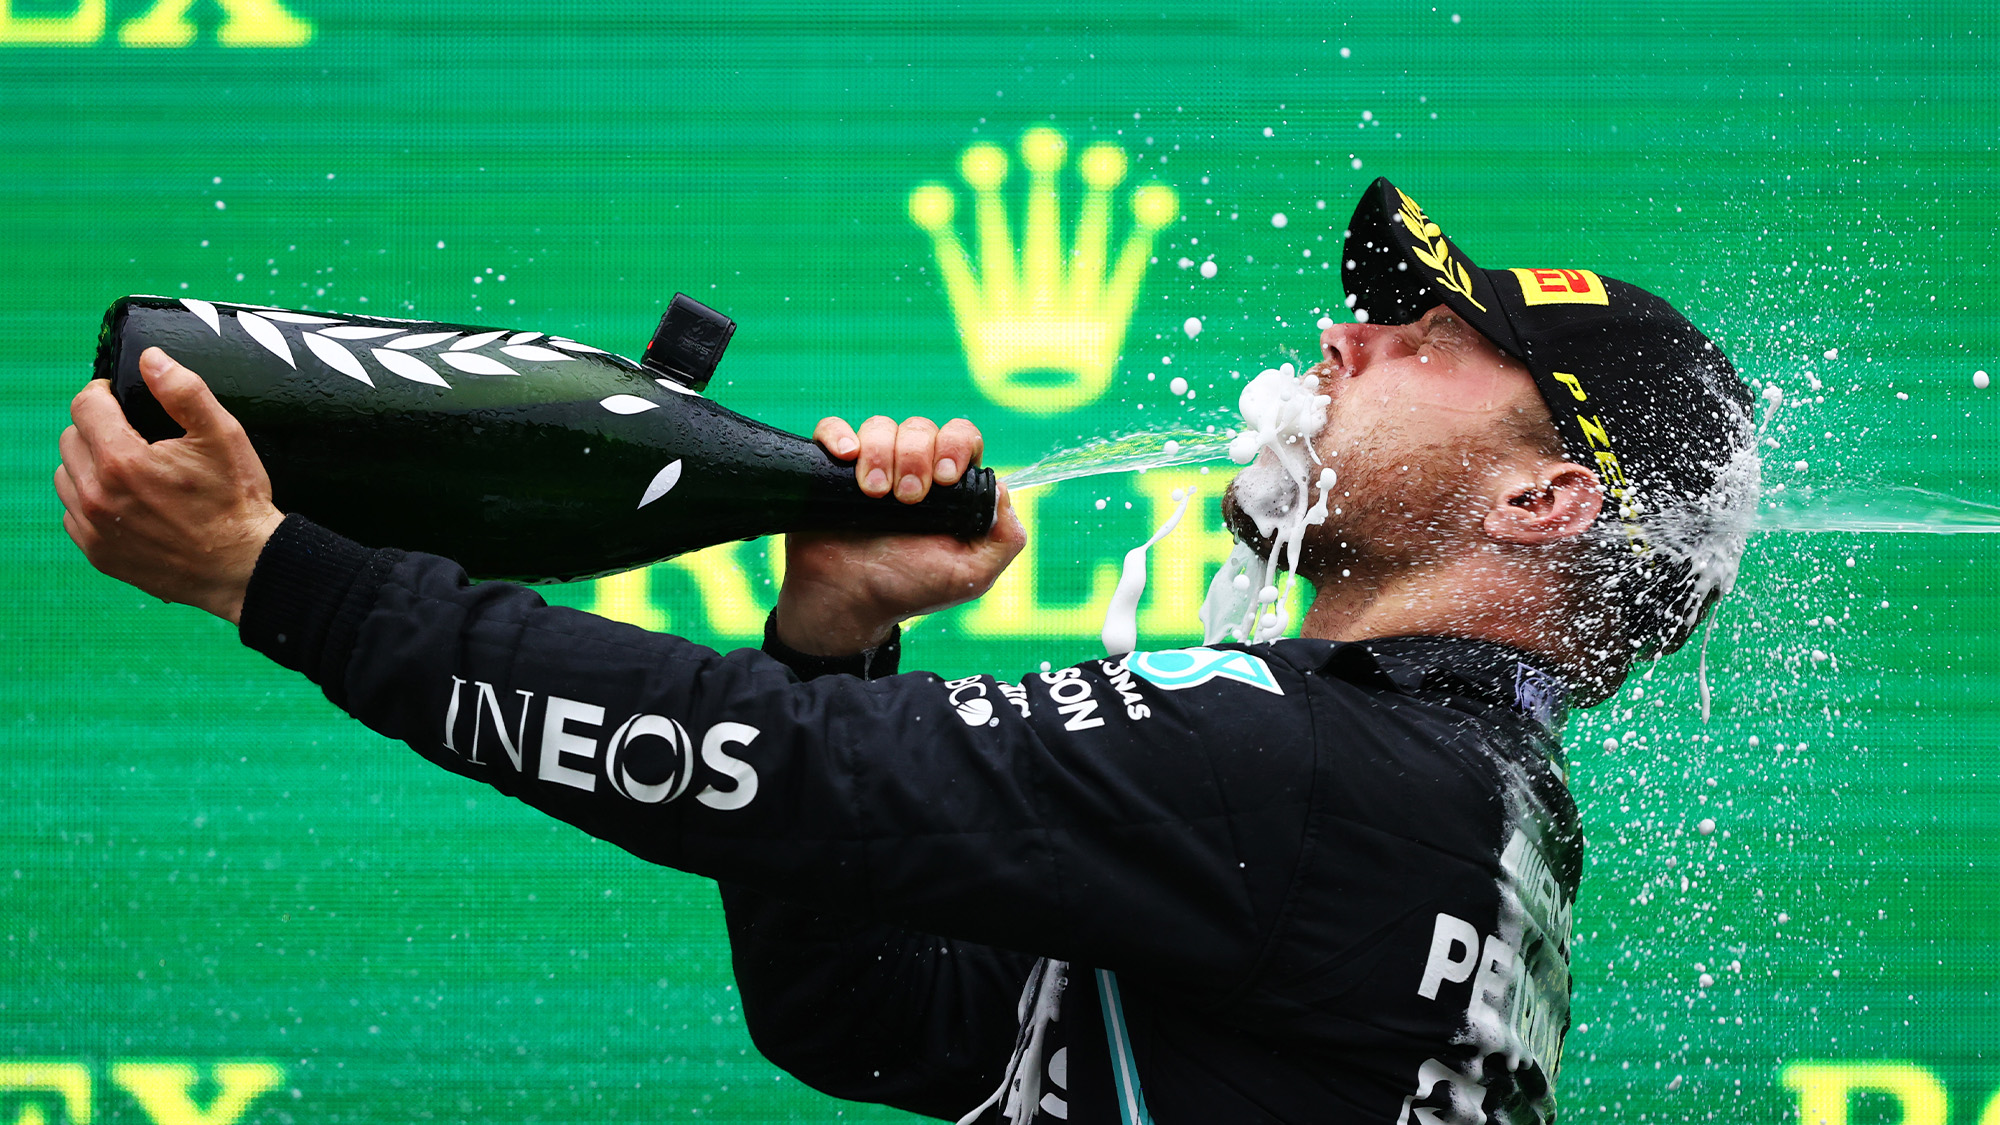 Valtteri Bottas sprays himself in the face with champagne at the 2021 Turkish Grand Prix